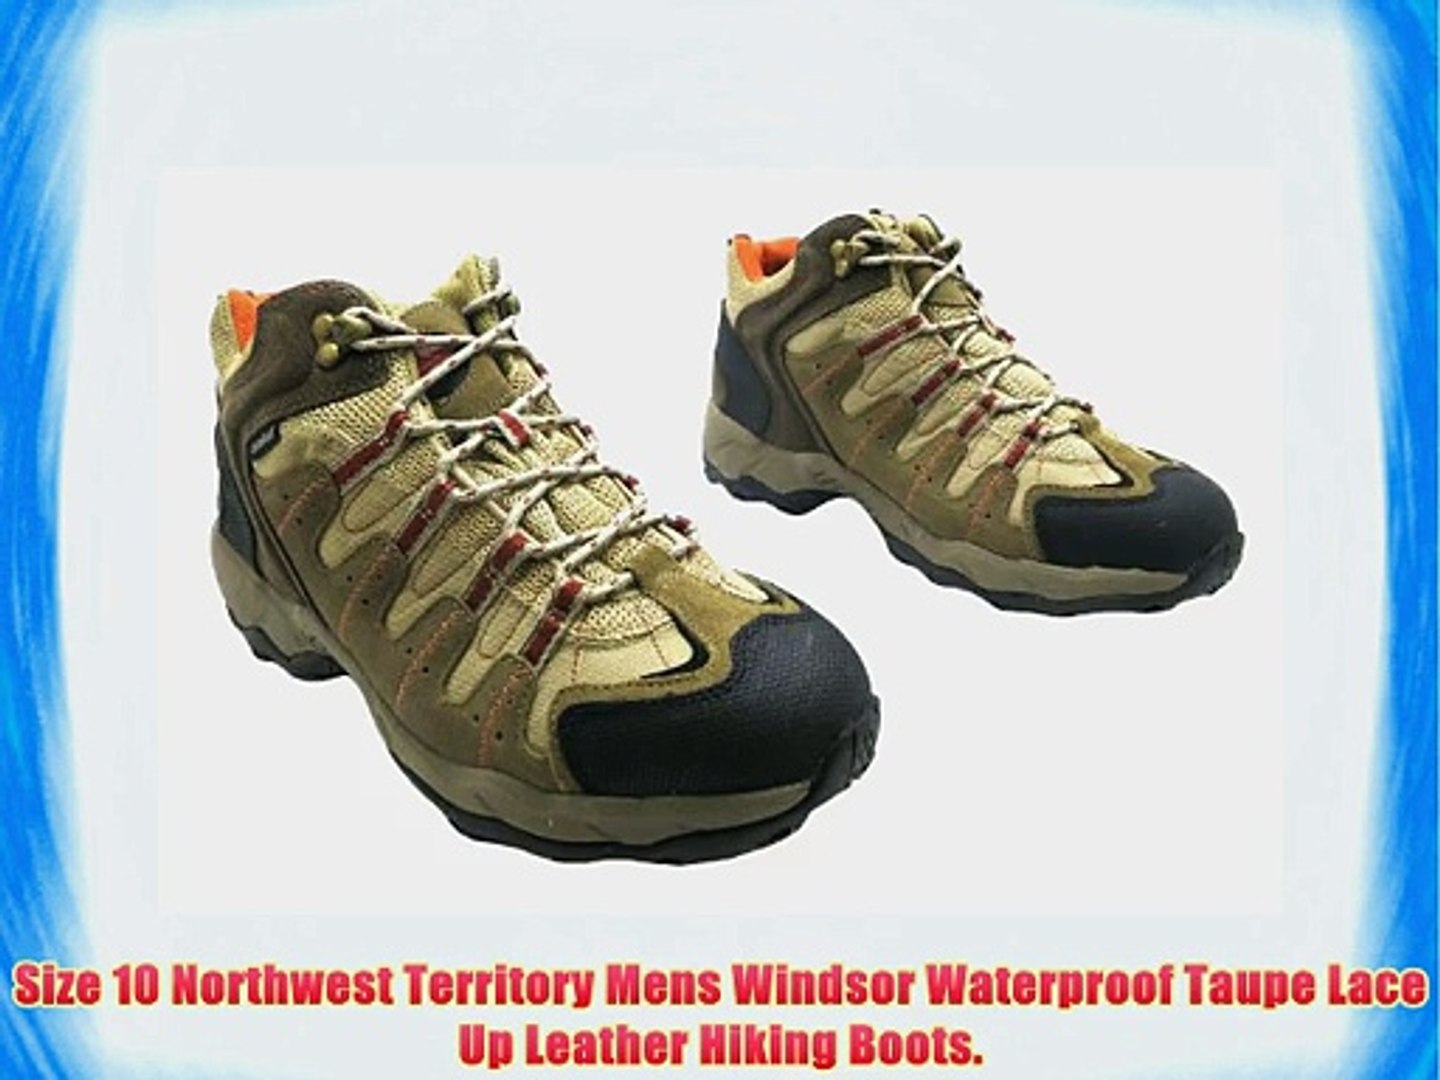 2bca0e2f4d0 Size 10 Northwest Territory Mens Windsor Waterproof Taupe Lace Up Leather  Hiking Boots.